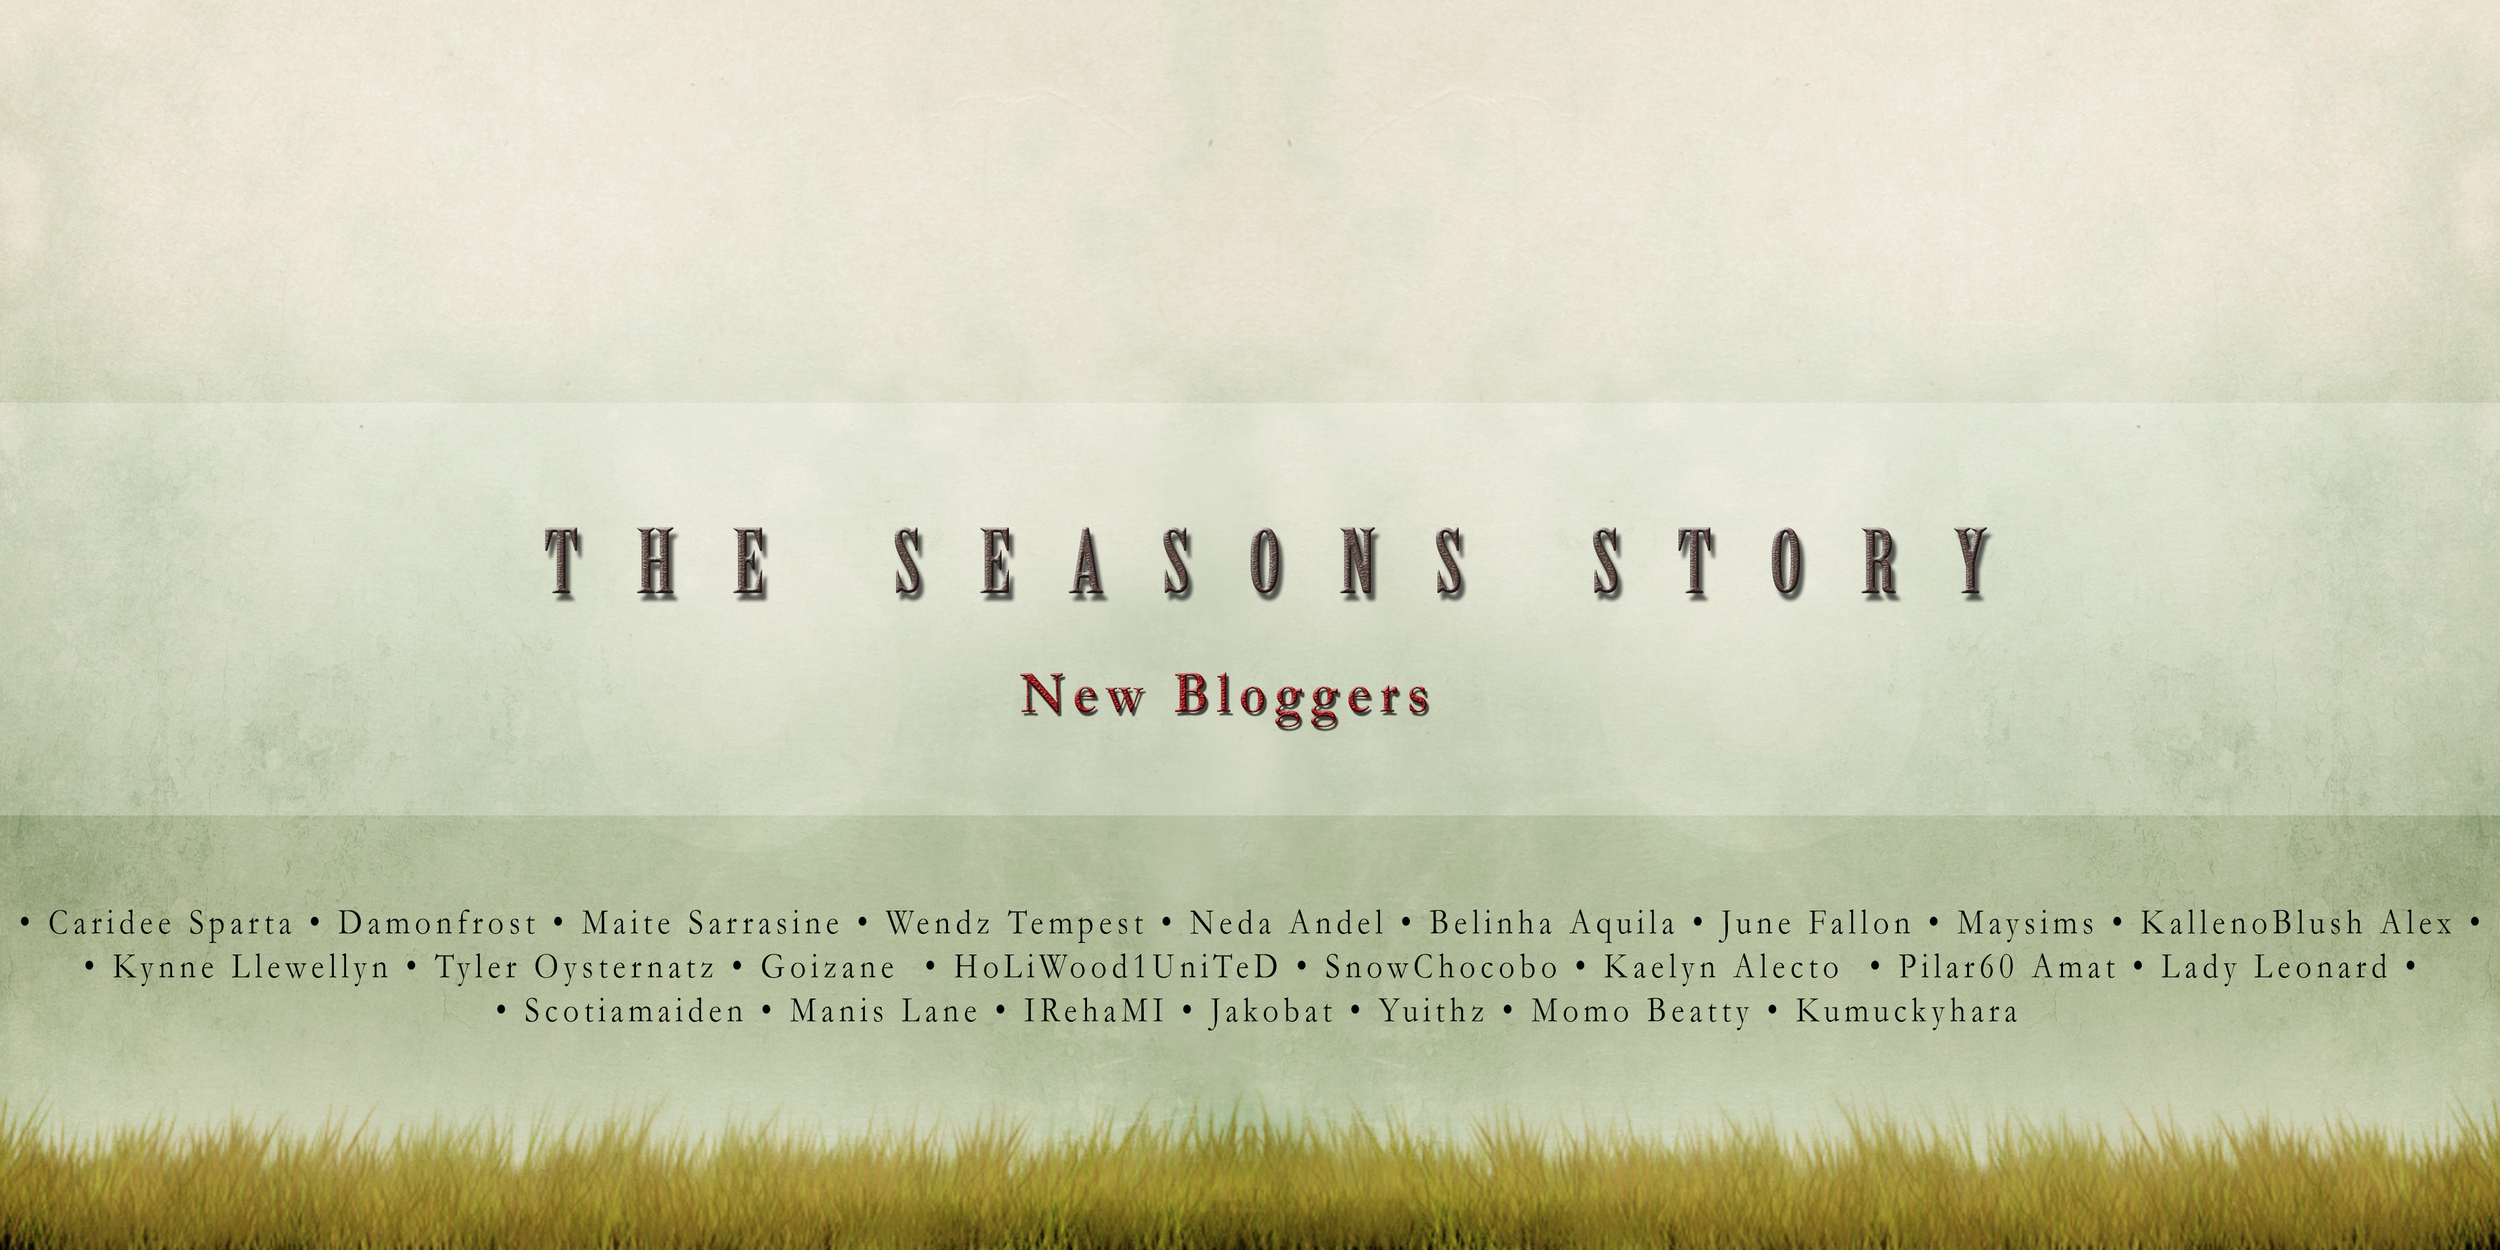 The-Seasons-Story-April-2016-New-Bloggers.png